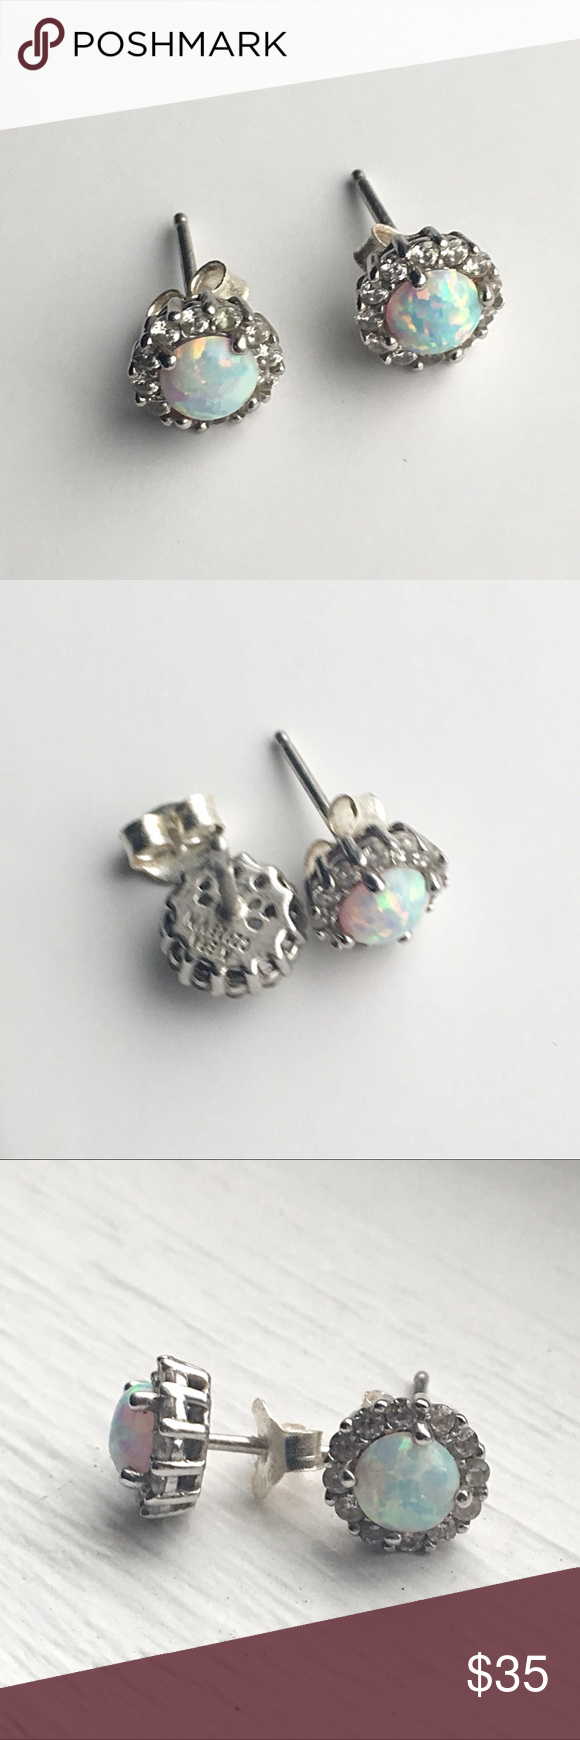 Kiera Couture Sterling Silver Opal And Cz Studs Feature Brand Stamp 925 Opals Surrounded By A